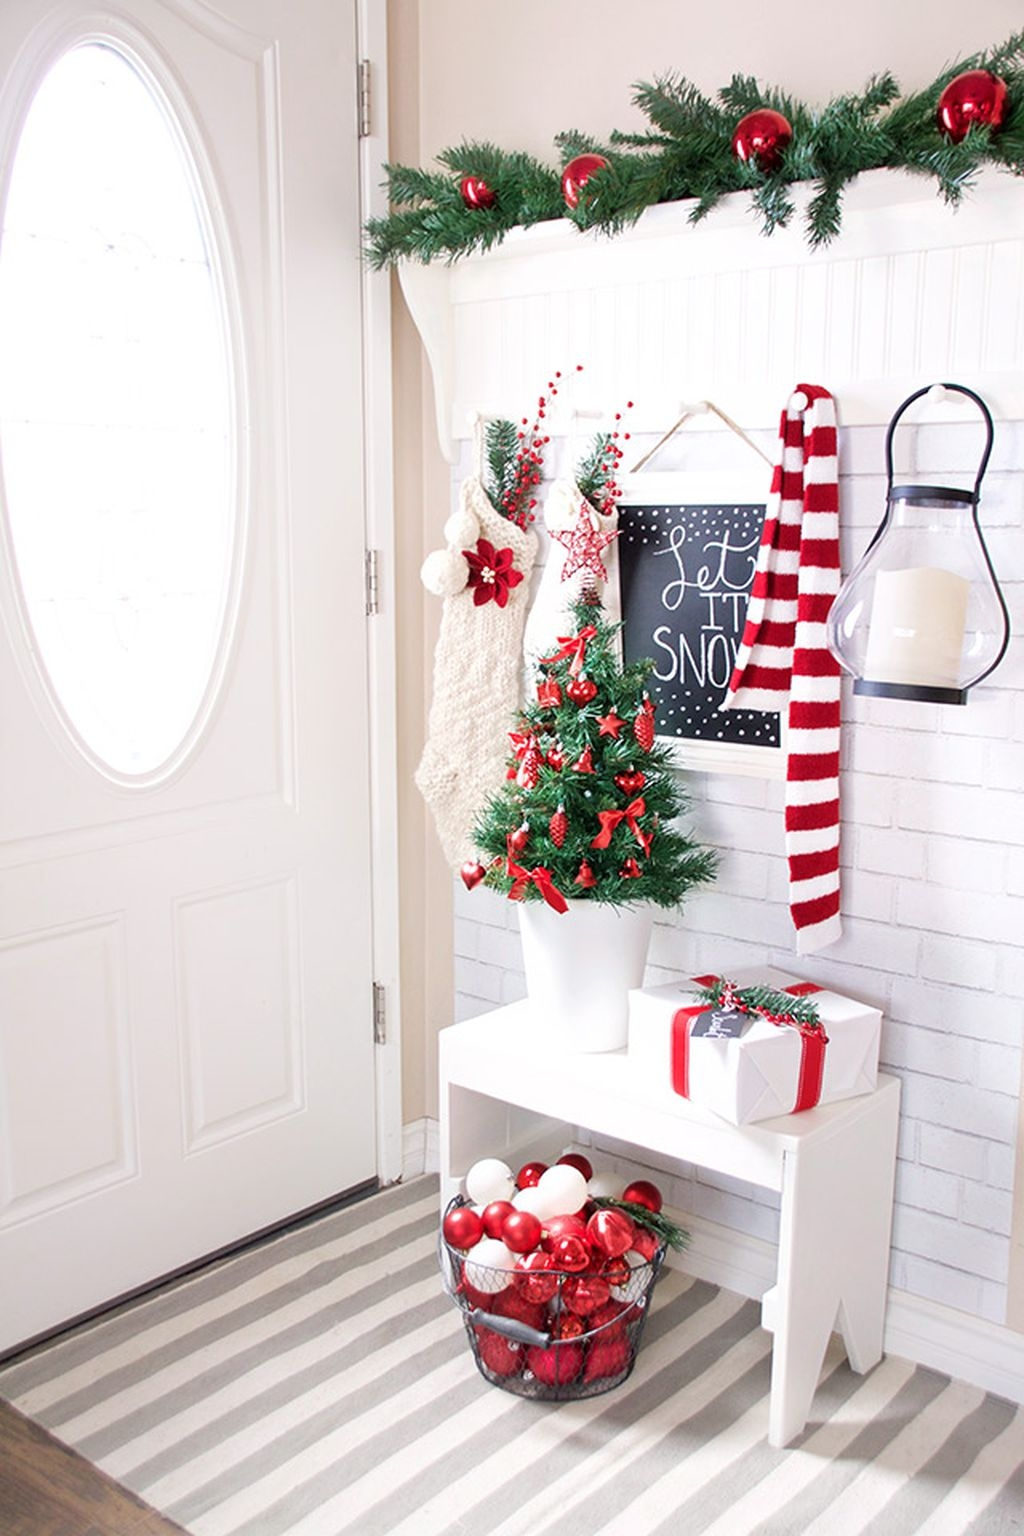 Welcoming And Cozy Christmas Entryway Decoration Ideas41